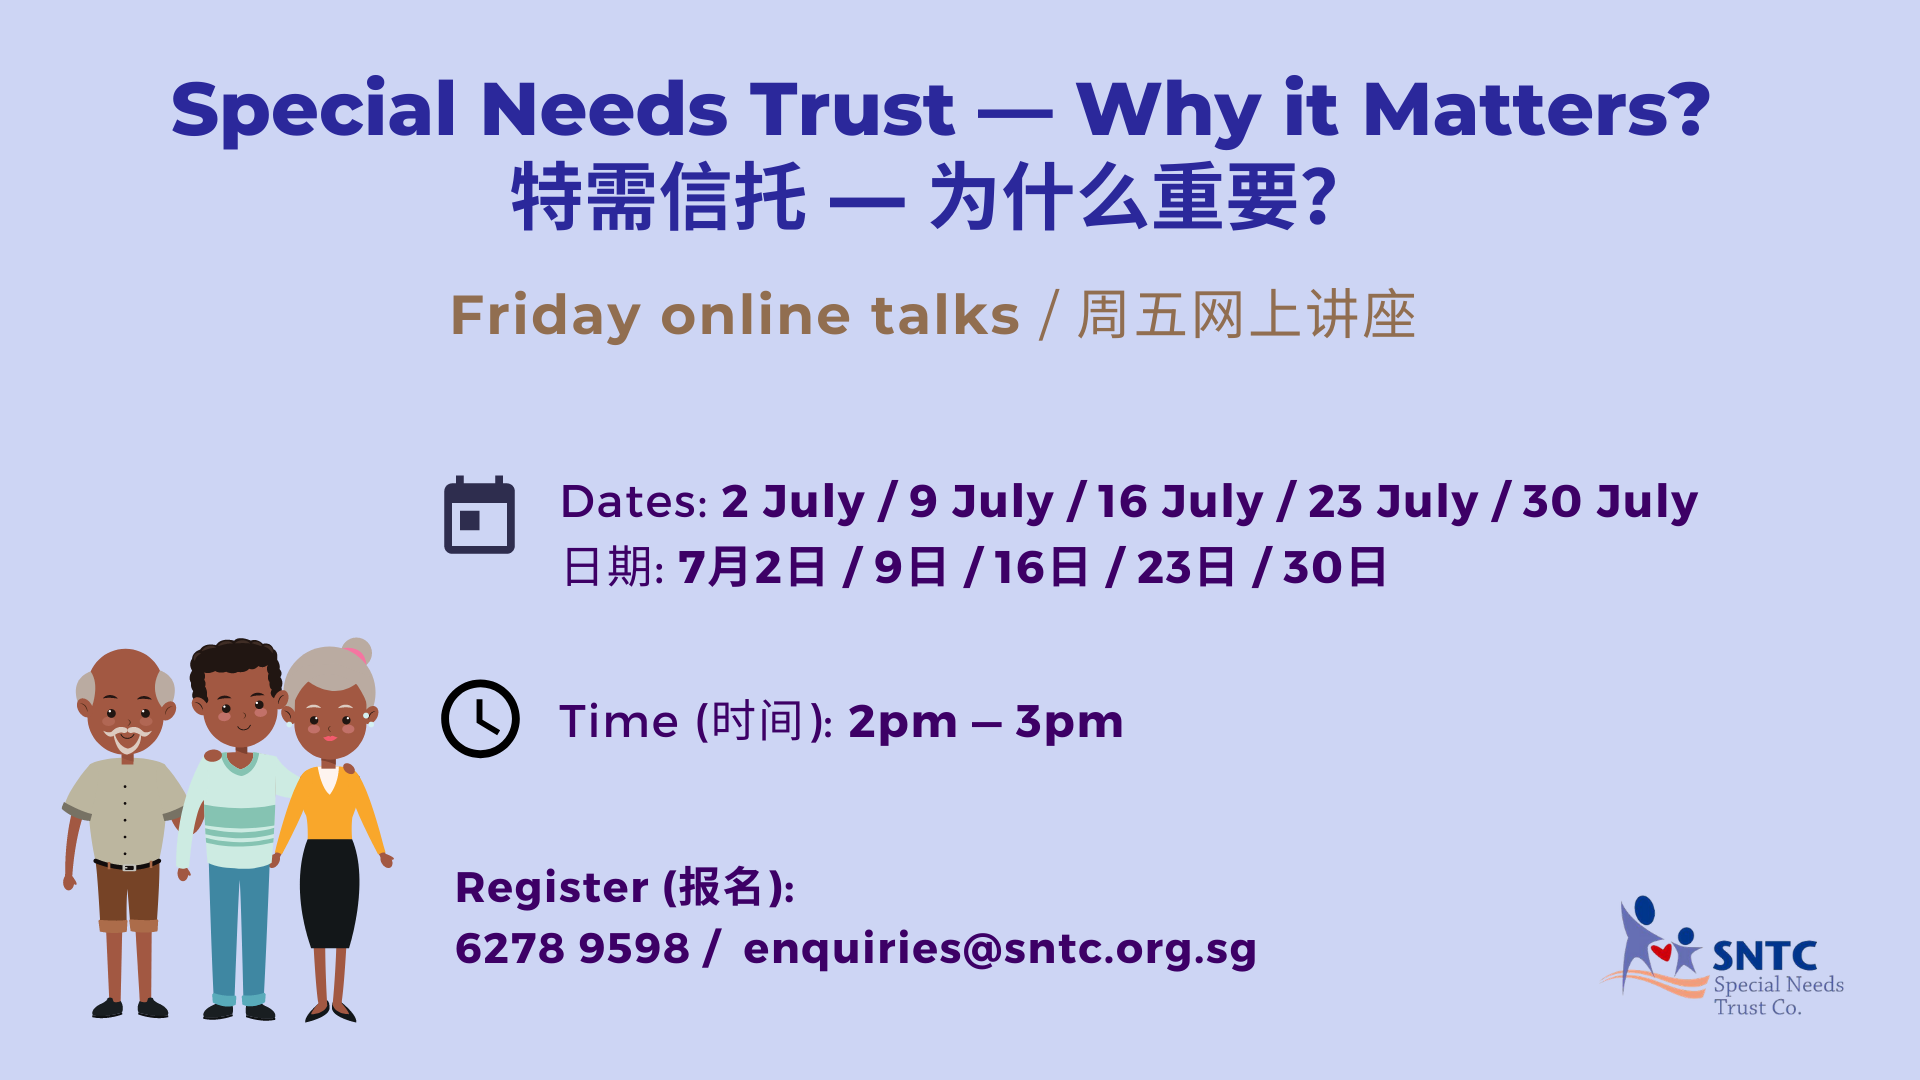 Weekly Online Talks: Special Needs Trust – Why It Matters? (特需信托 – 为什么重要?) - 2, 9, 16, 23, 30 July 2021